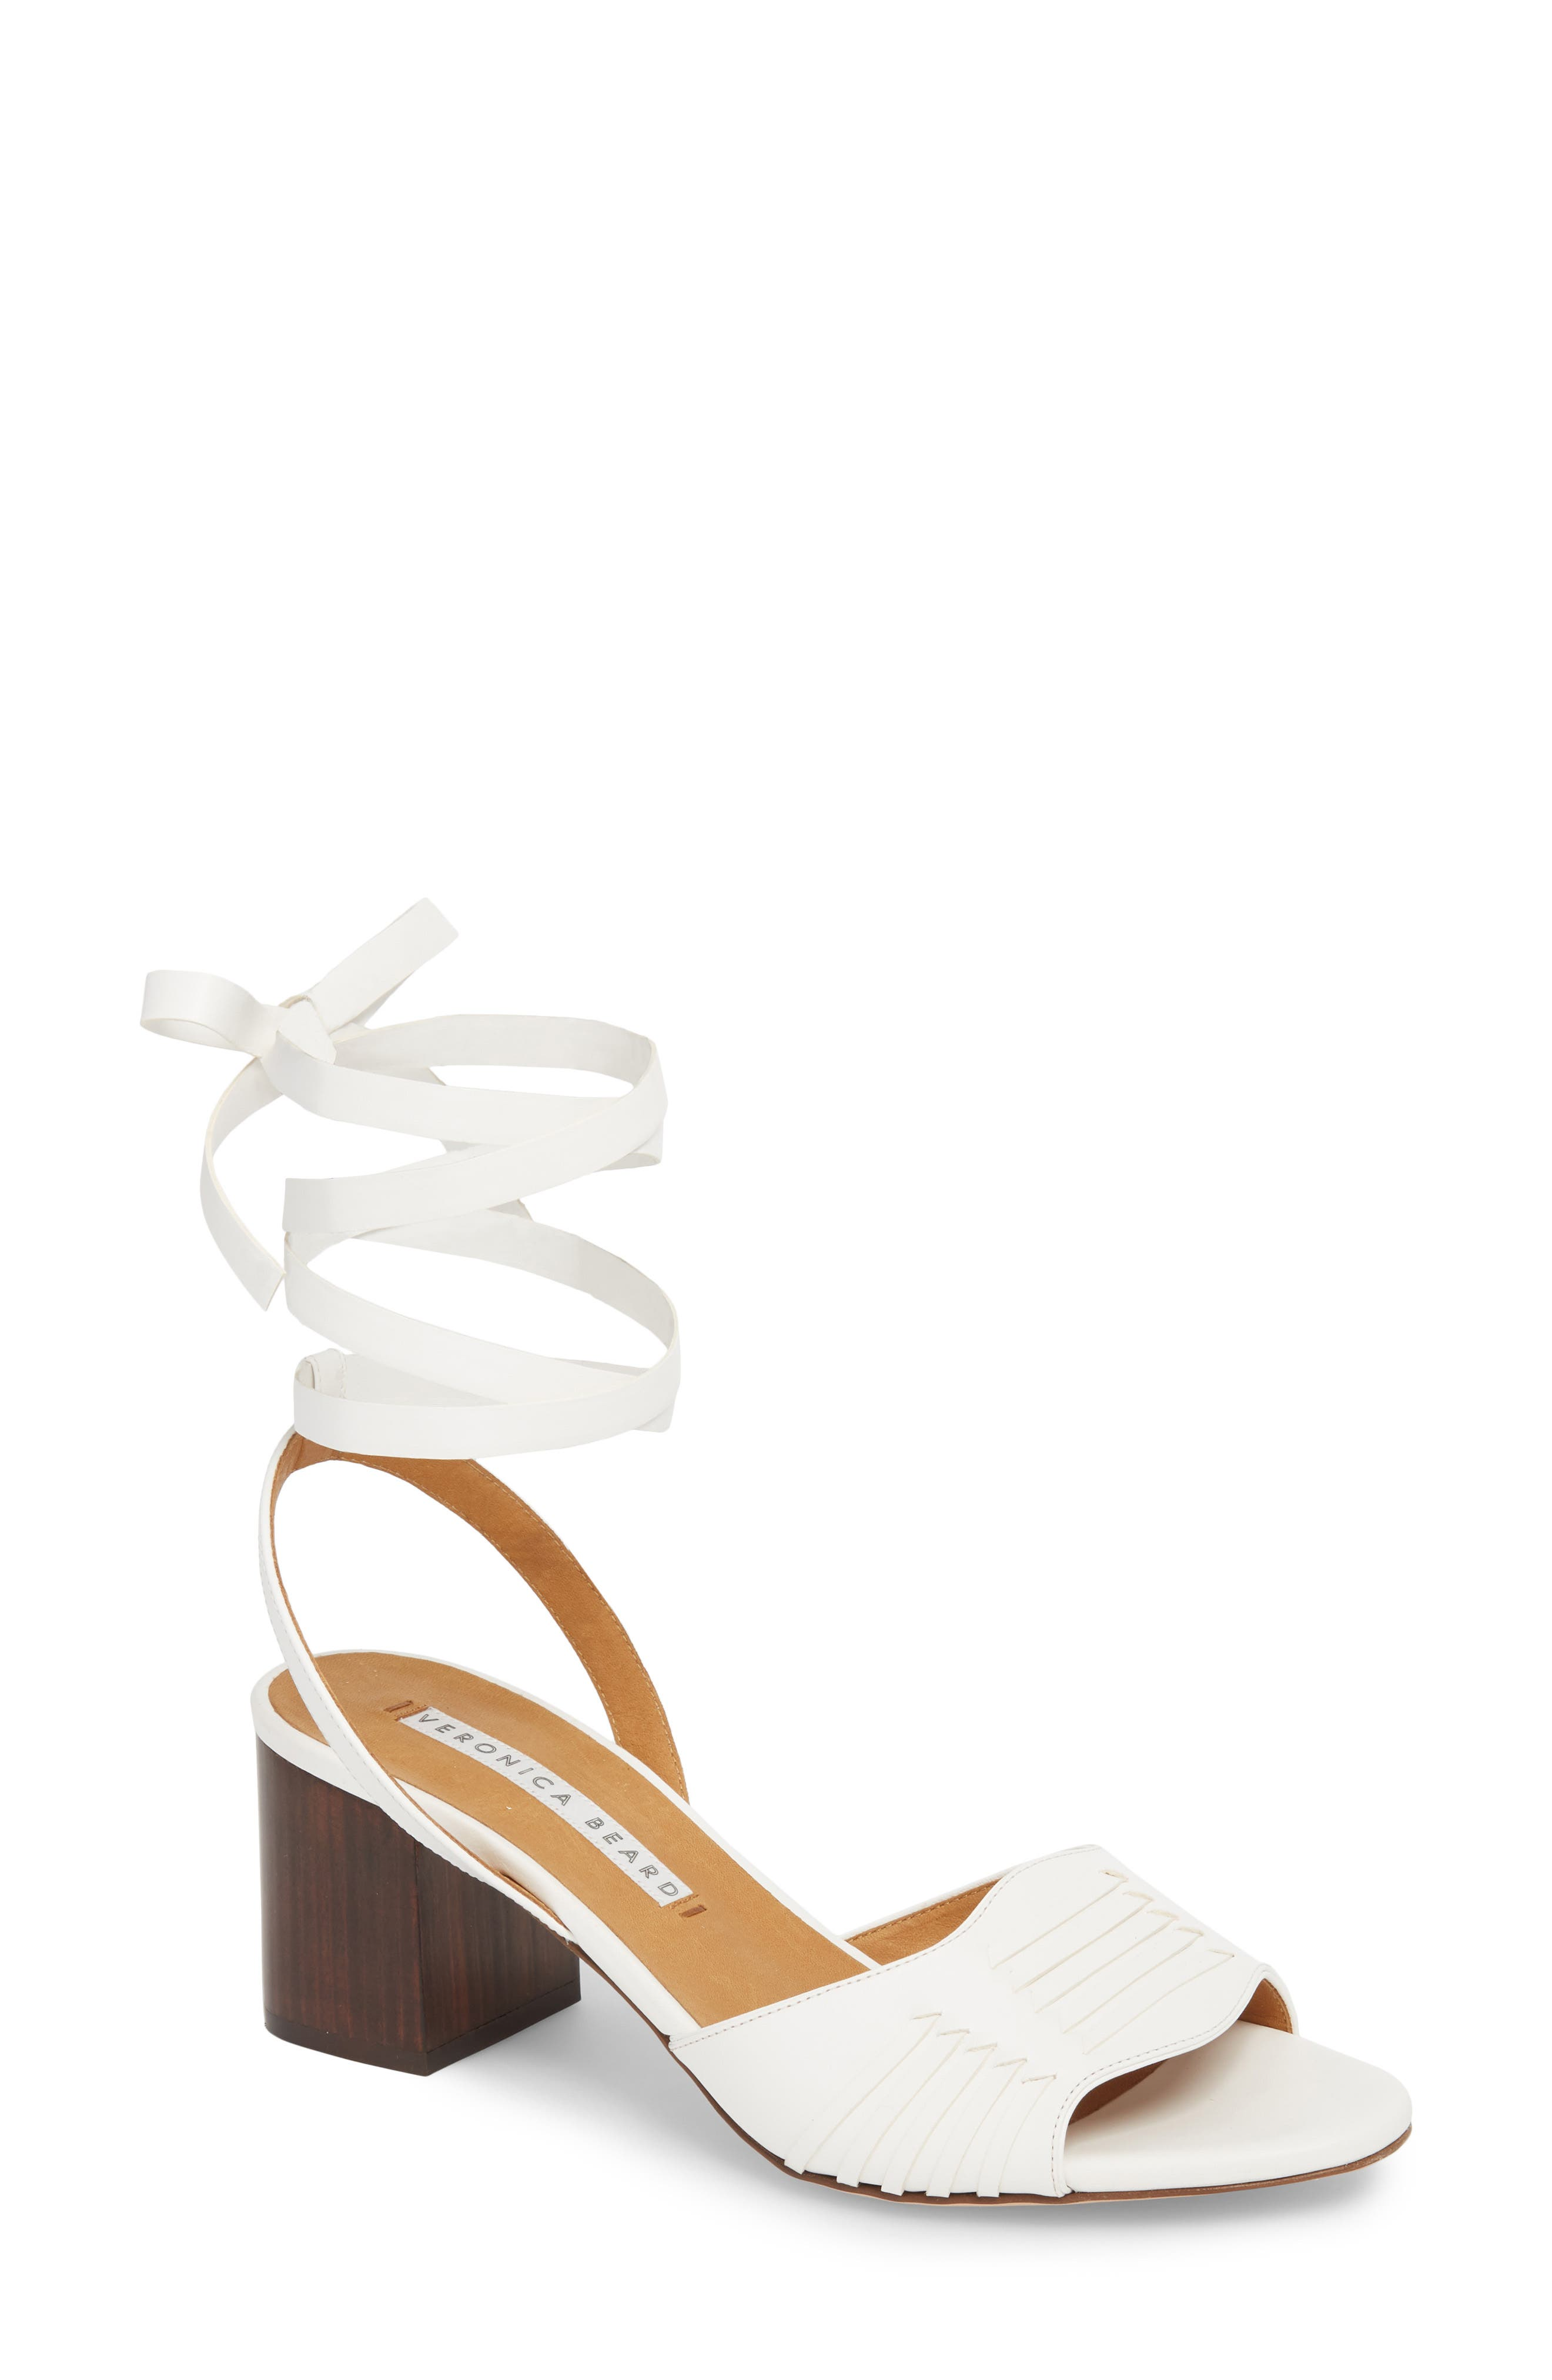 Brody Ankle Wrap Sandal,                         Main,                         color, White